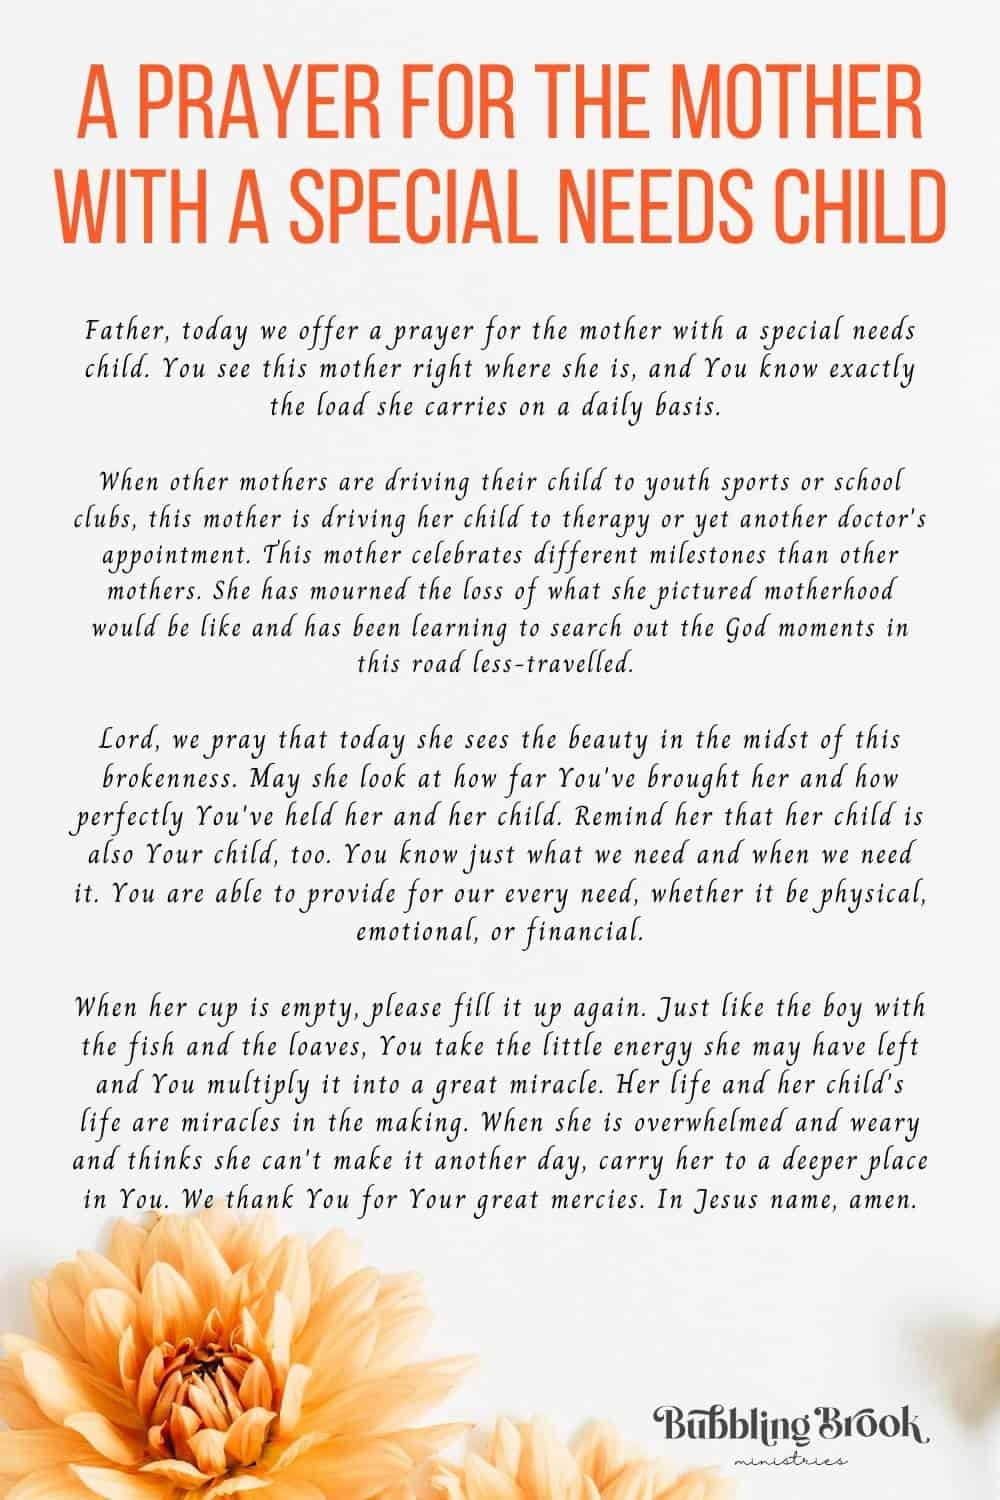 A Prayer For the Mother With a Special Needs Child